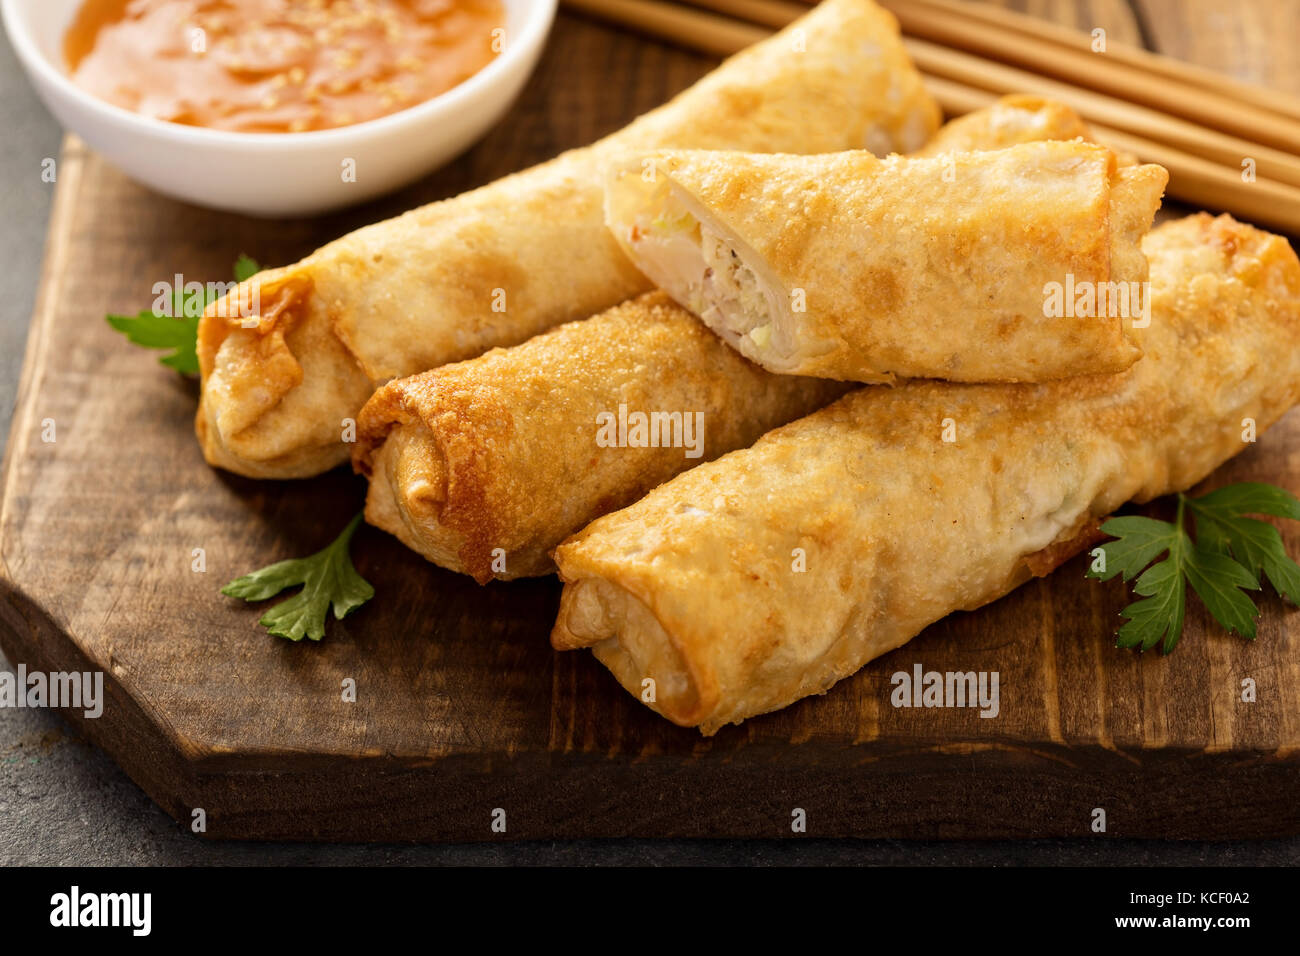 Egg rolls with cabbage and chicken - Stock Image